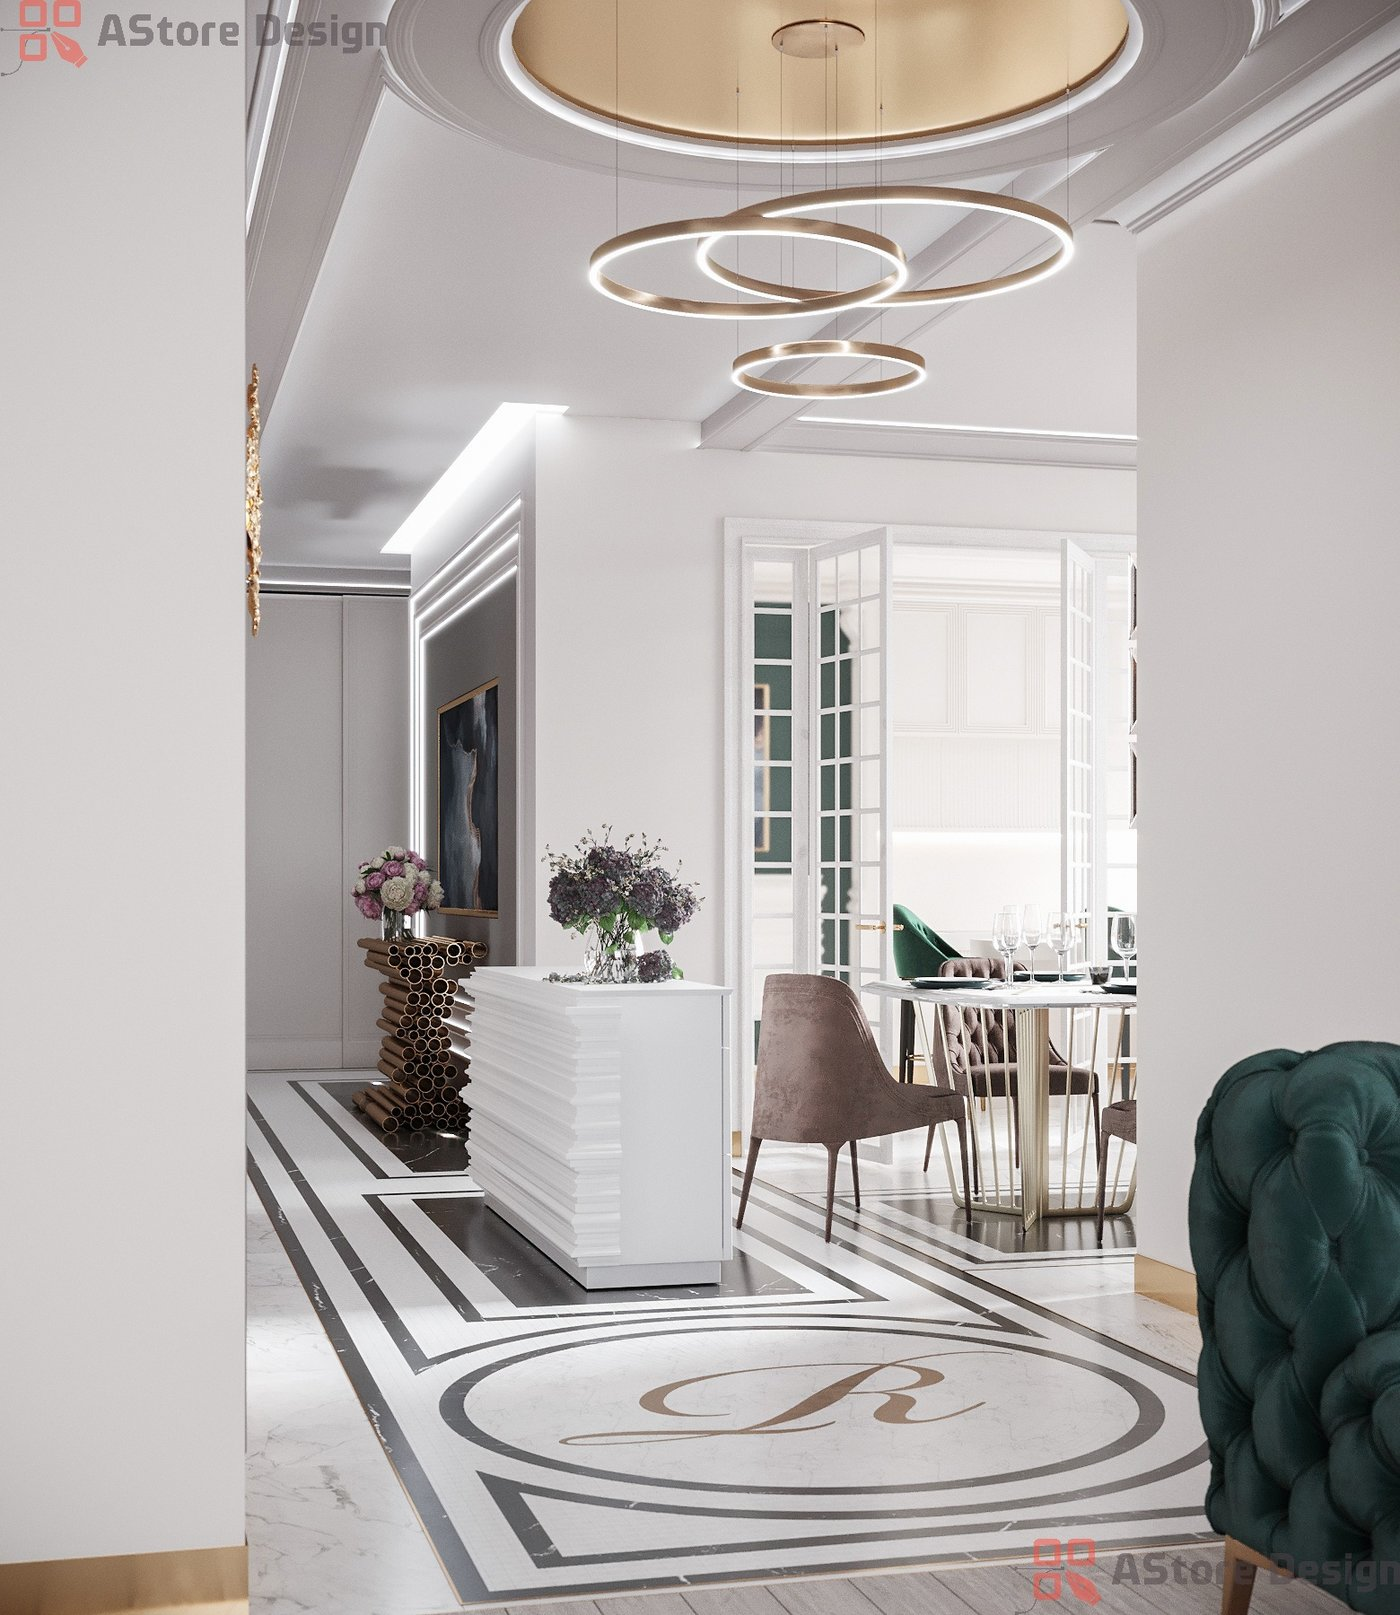 Visualization of the apartment 124 meters